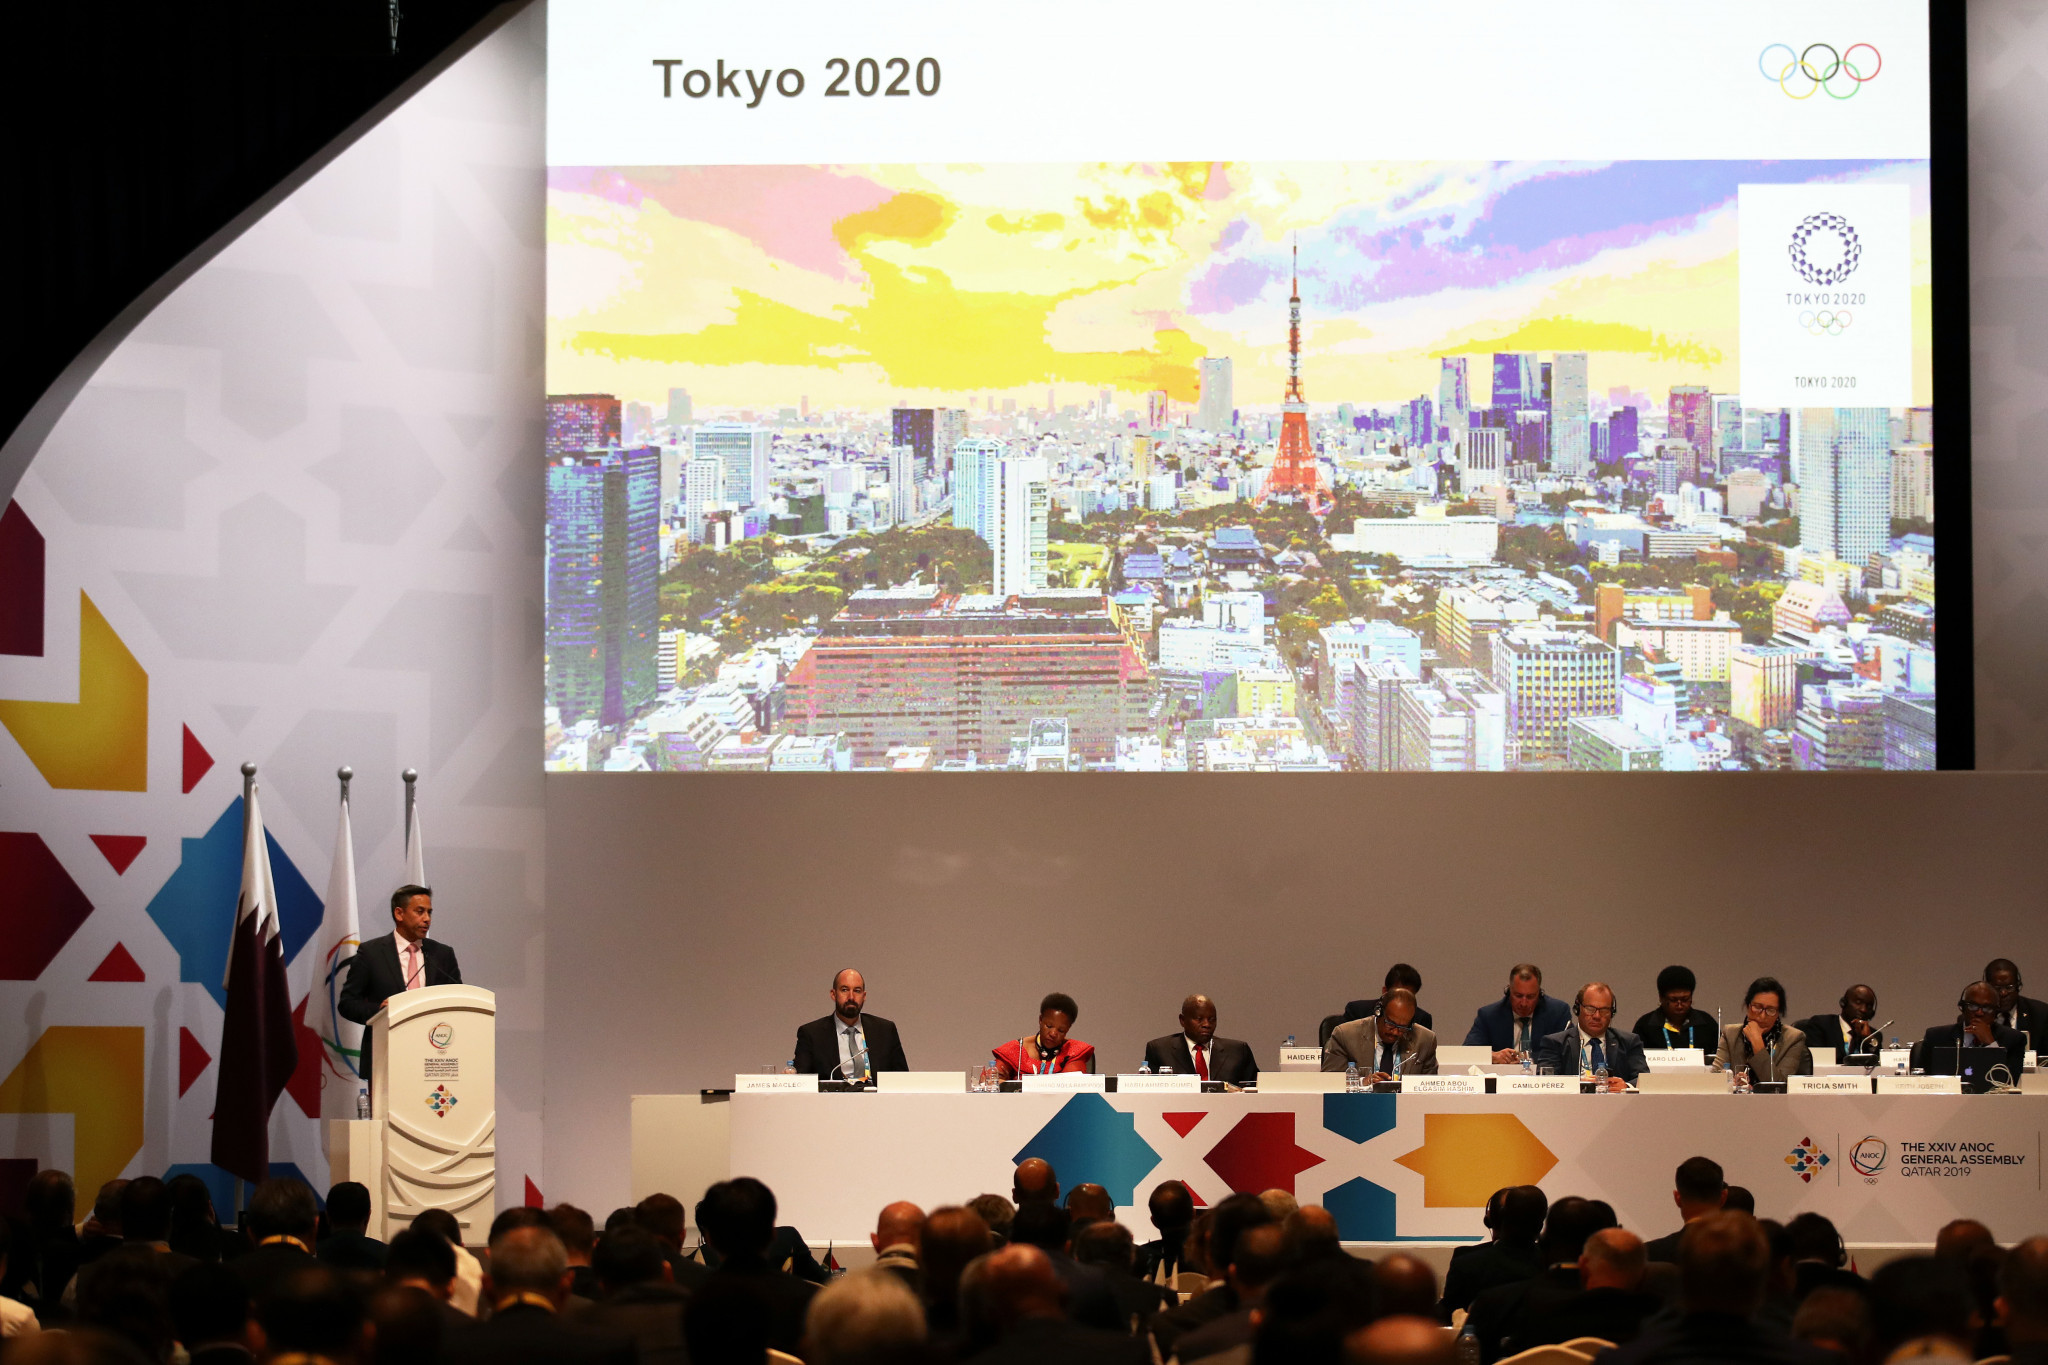 Tokyo 2020 to headline two OCA regional forums in Bangkok